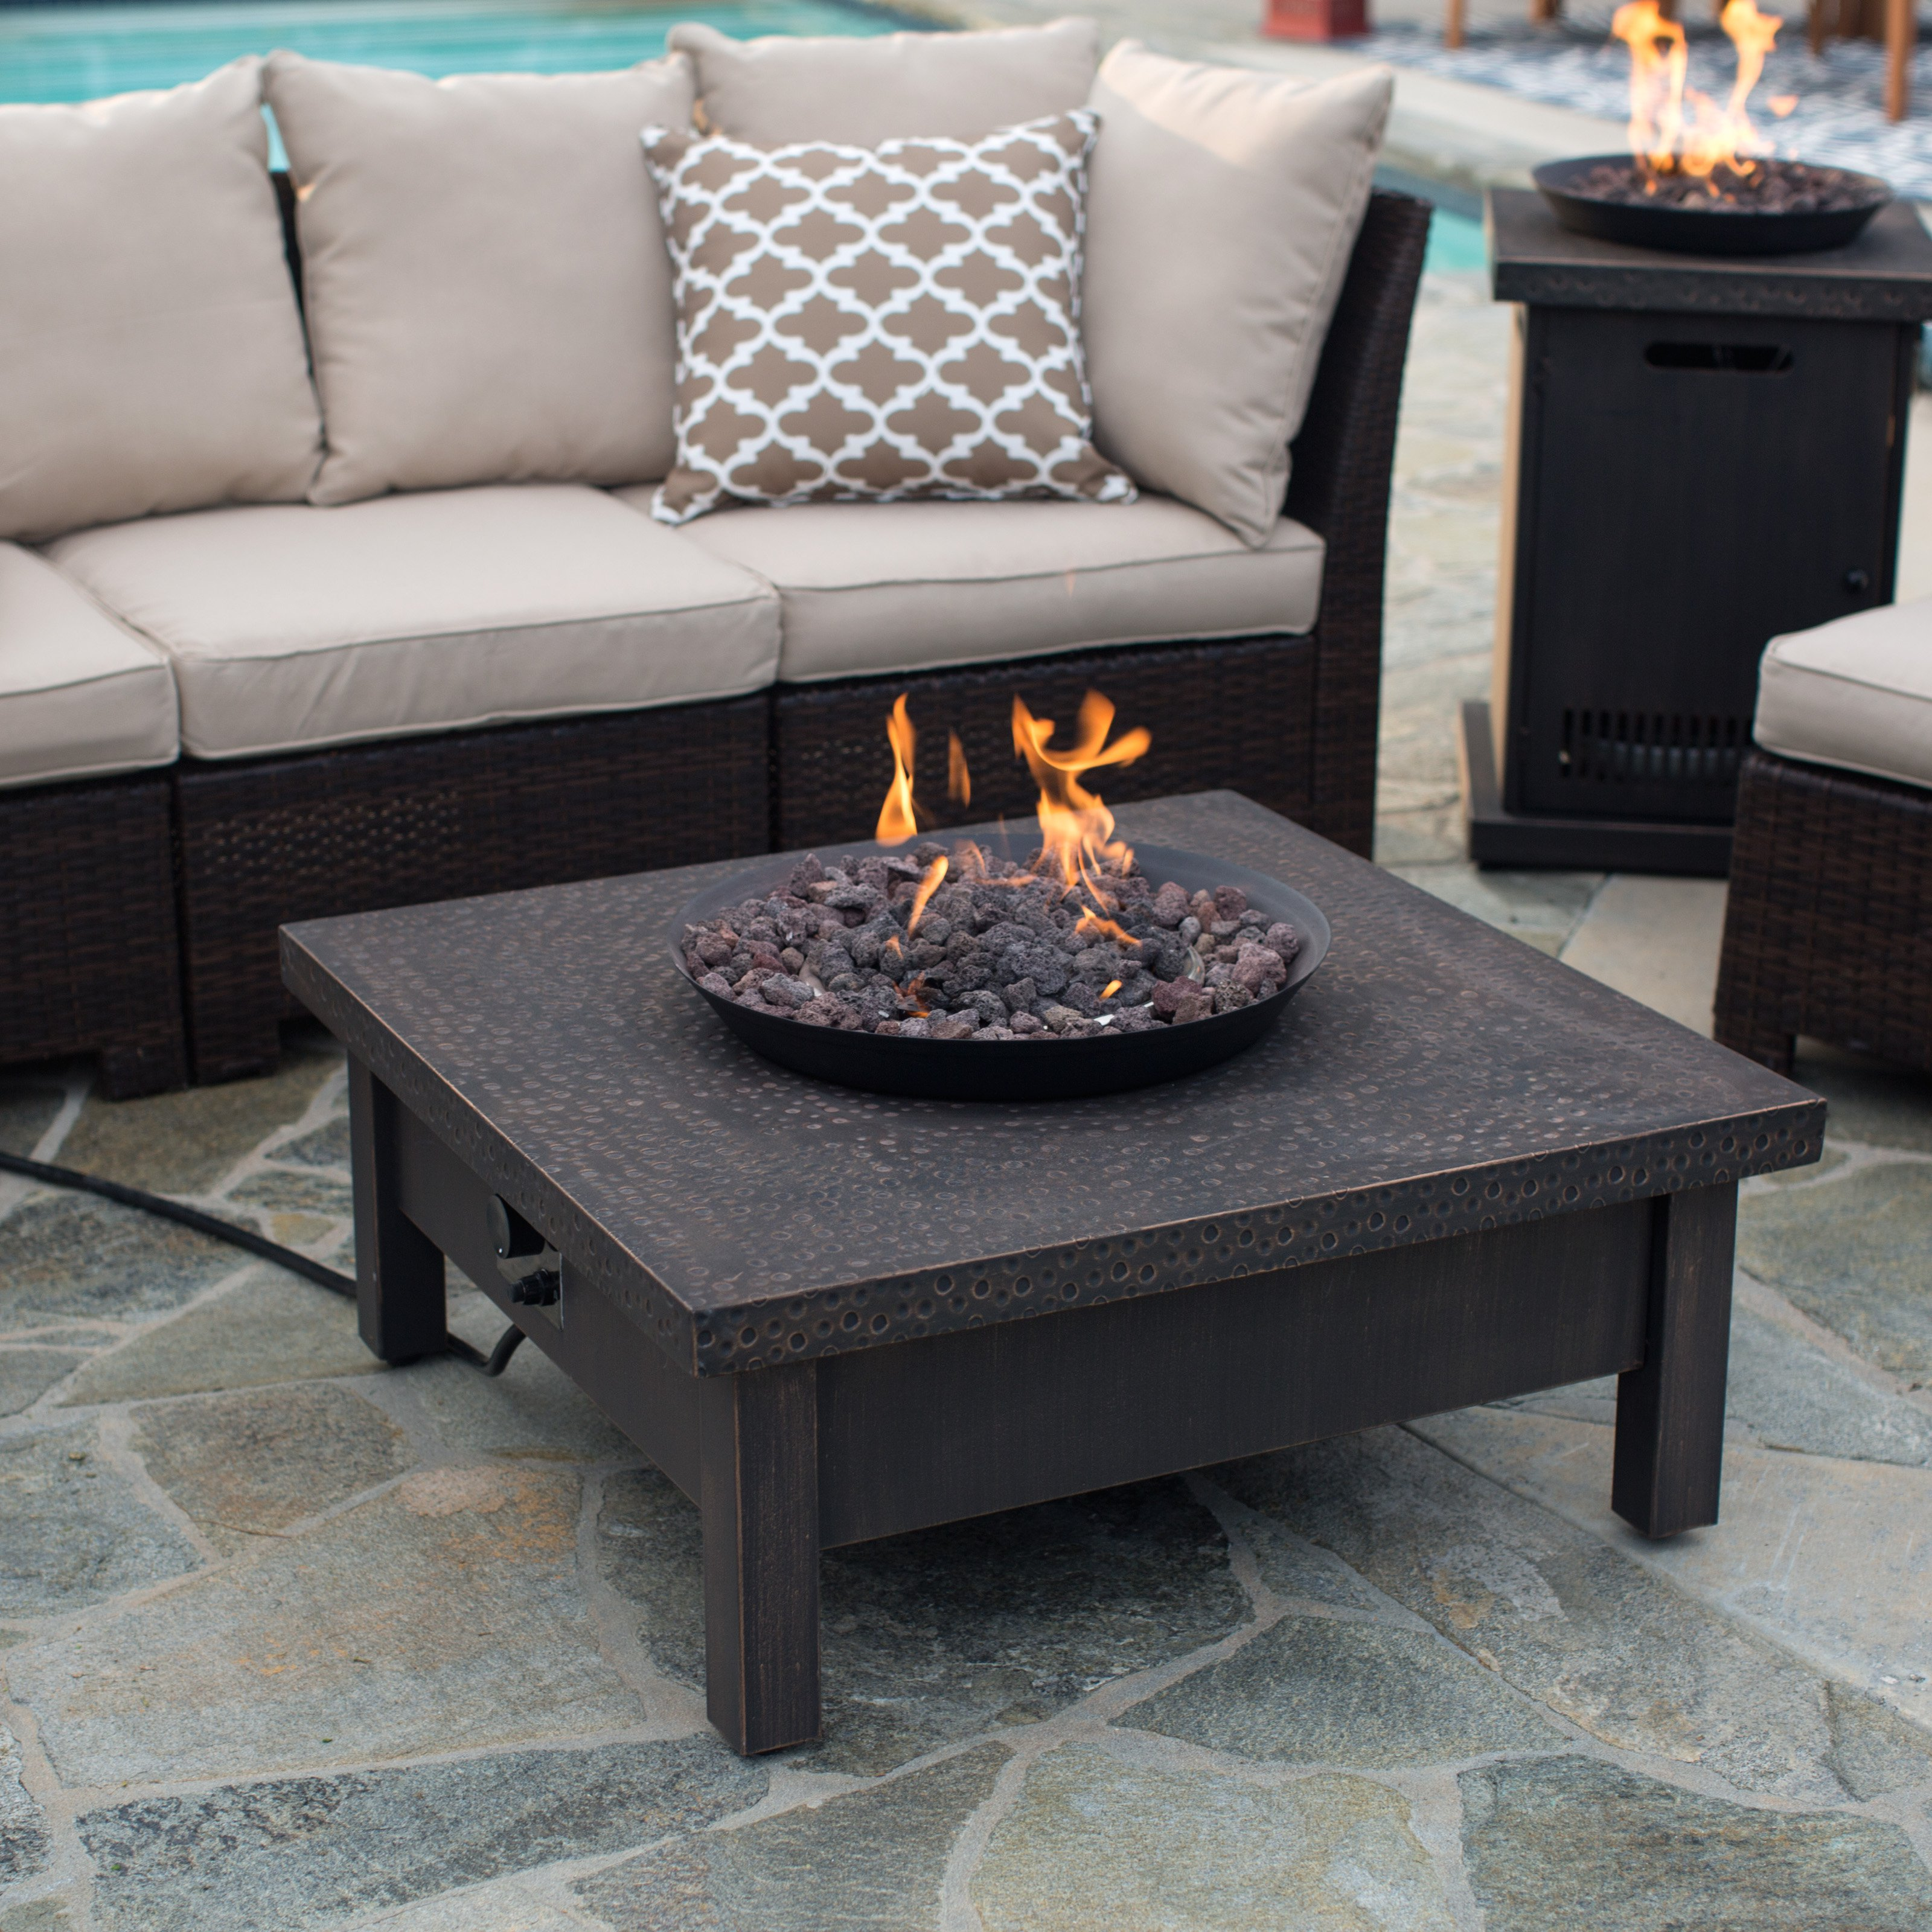 Red Ember Livingston 35 in. Square Gas Fire Pit Table